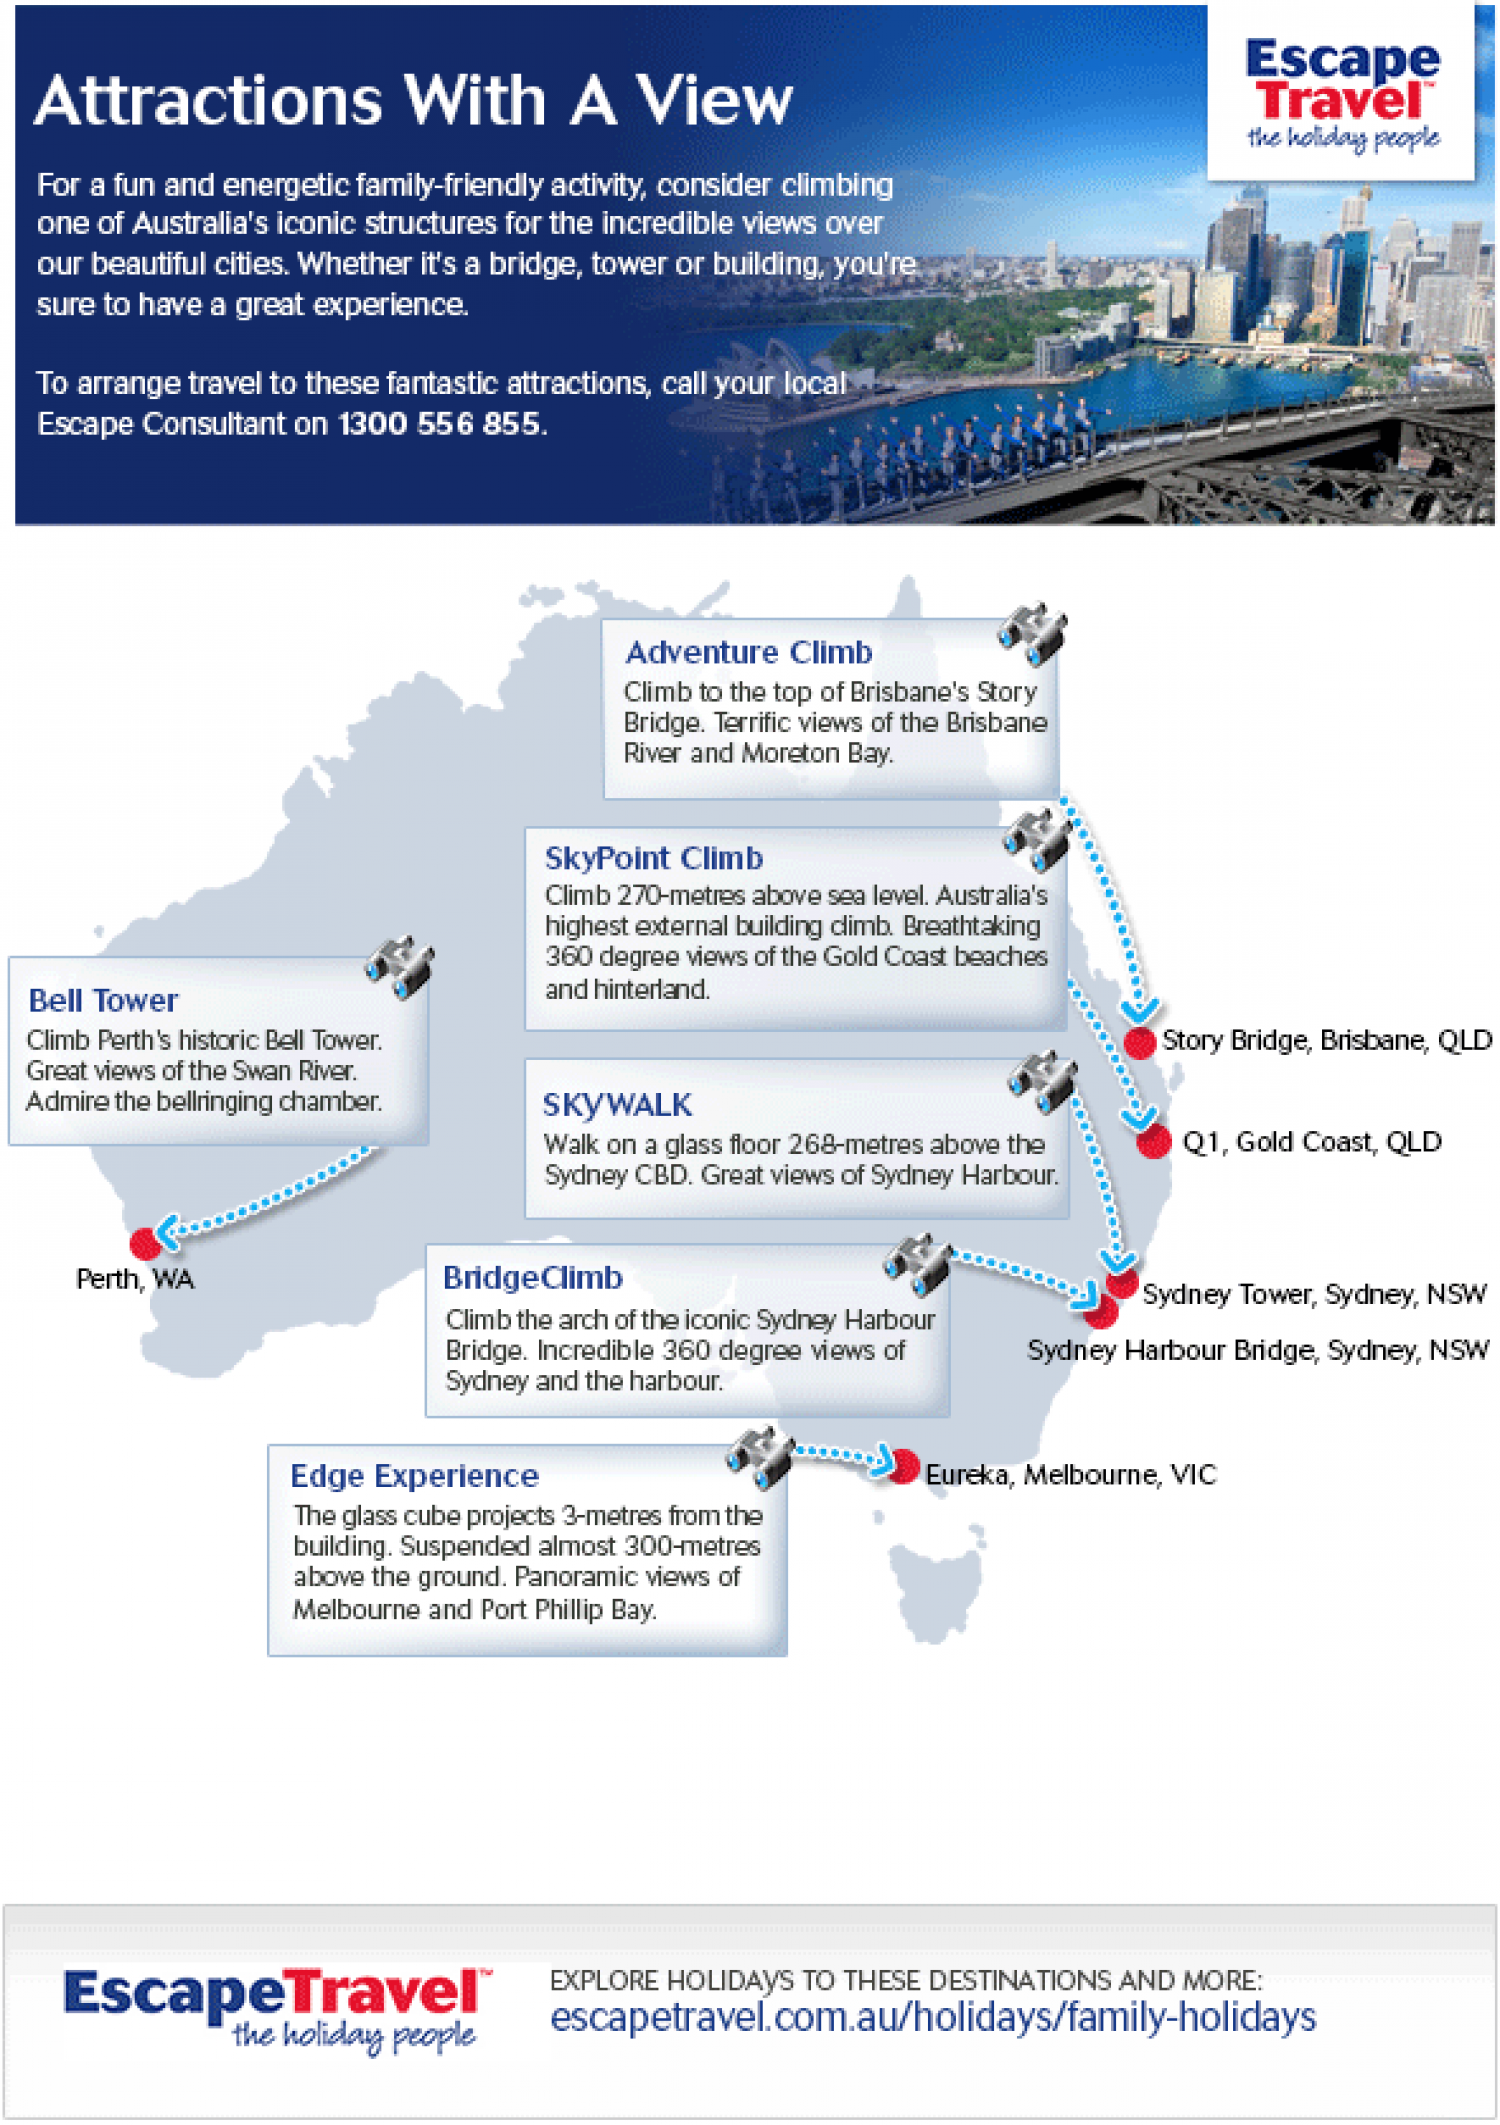 Attractions in Australia With A View Infographic